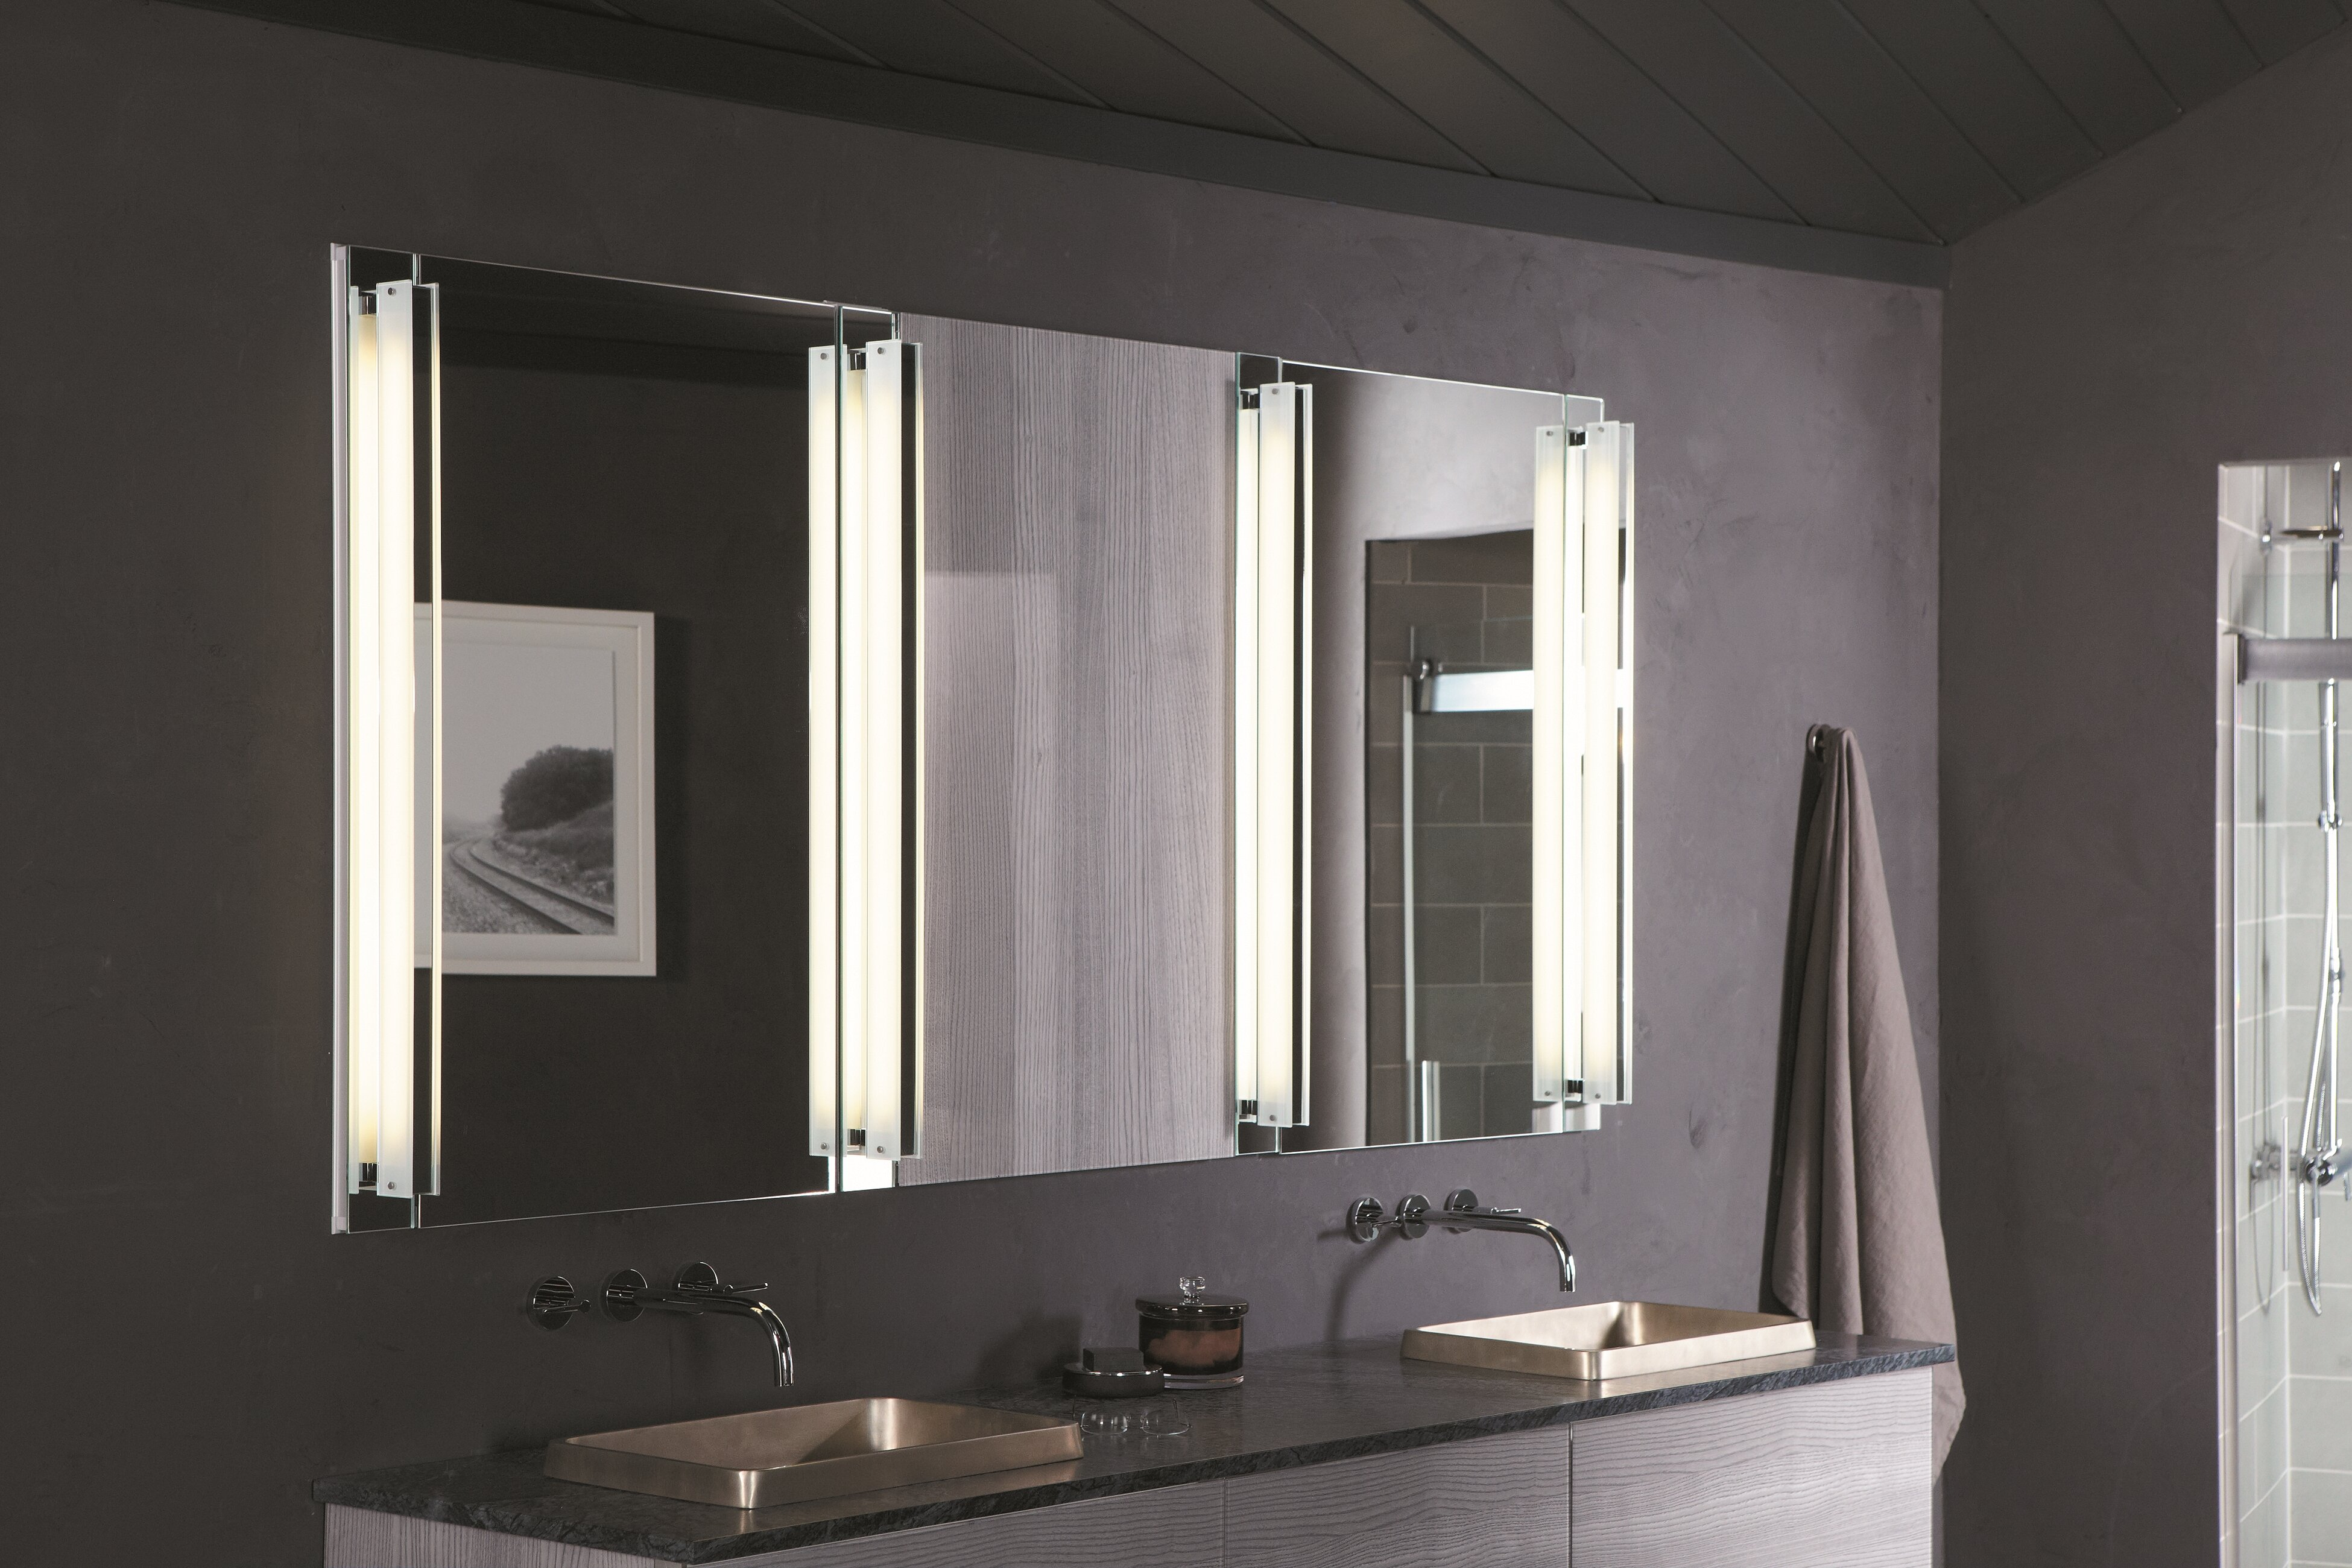 mount inch mountrecessed cabinet no recessed eviva wall lights with all a lazy bathroom product mirror medicine